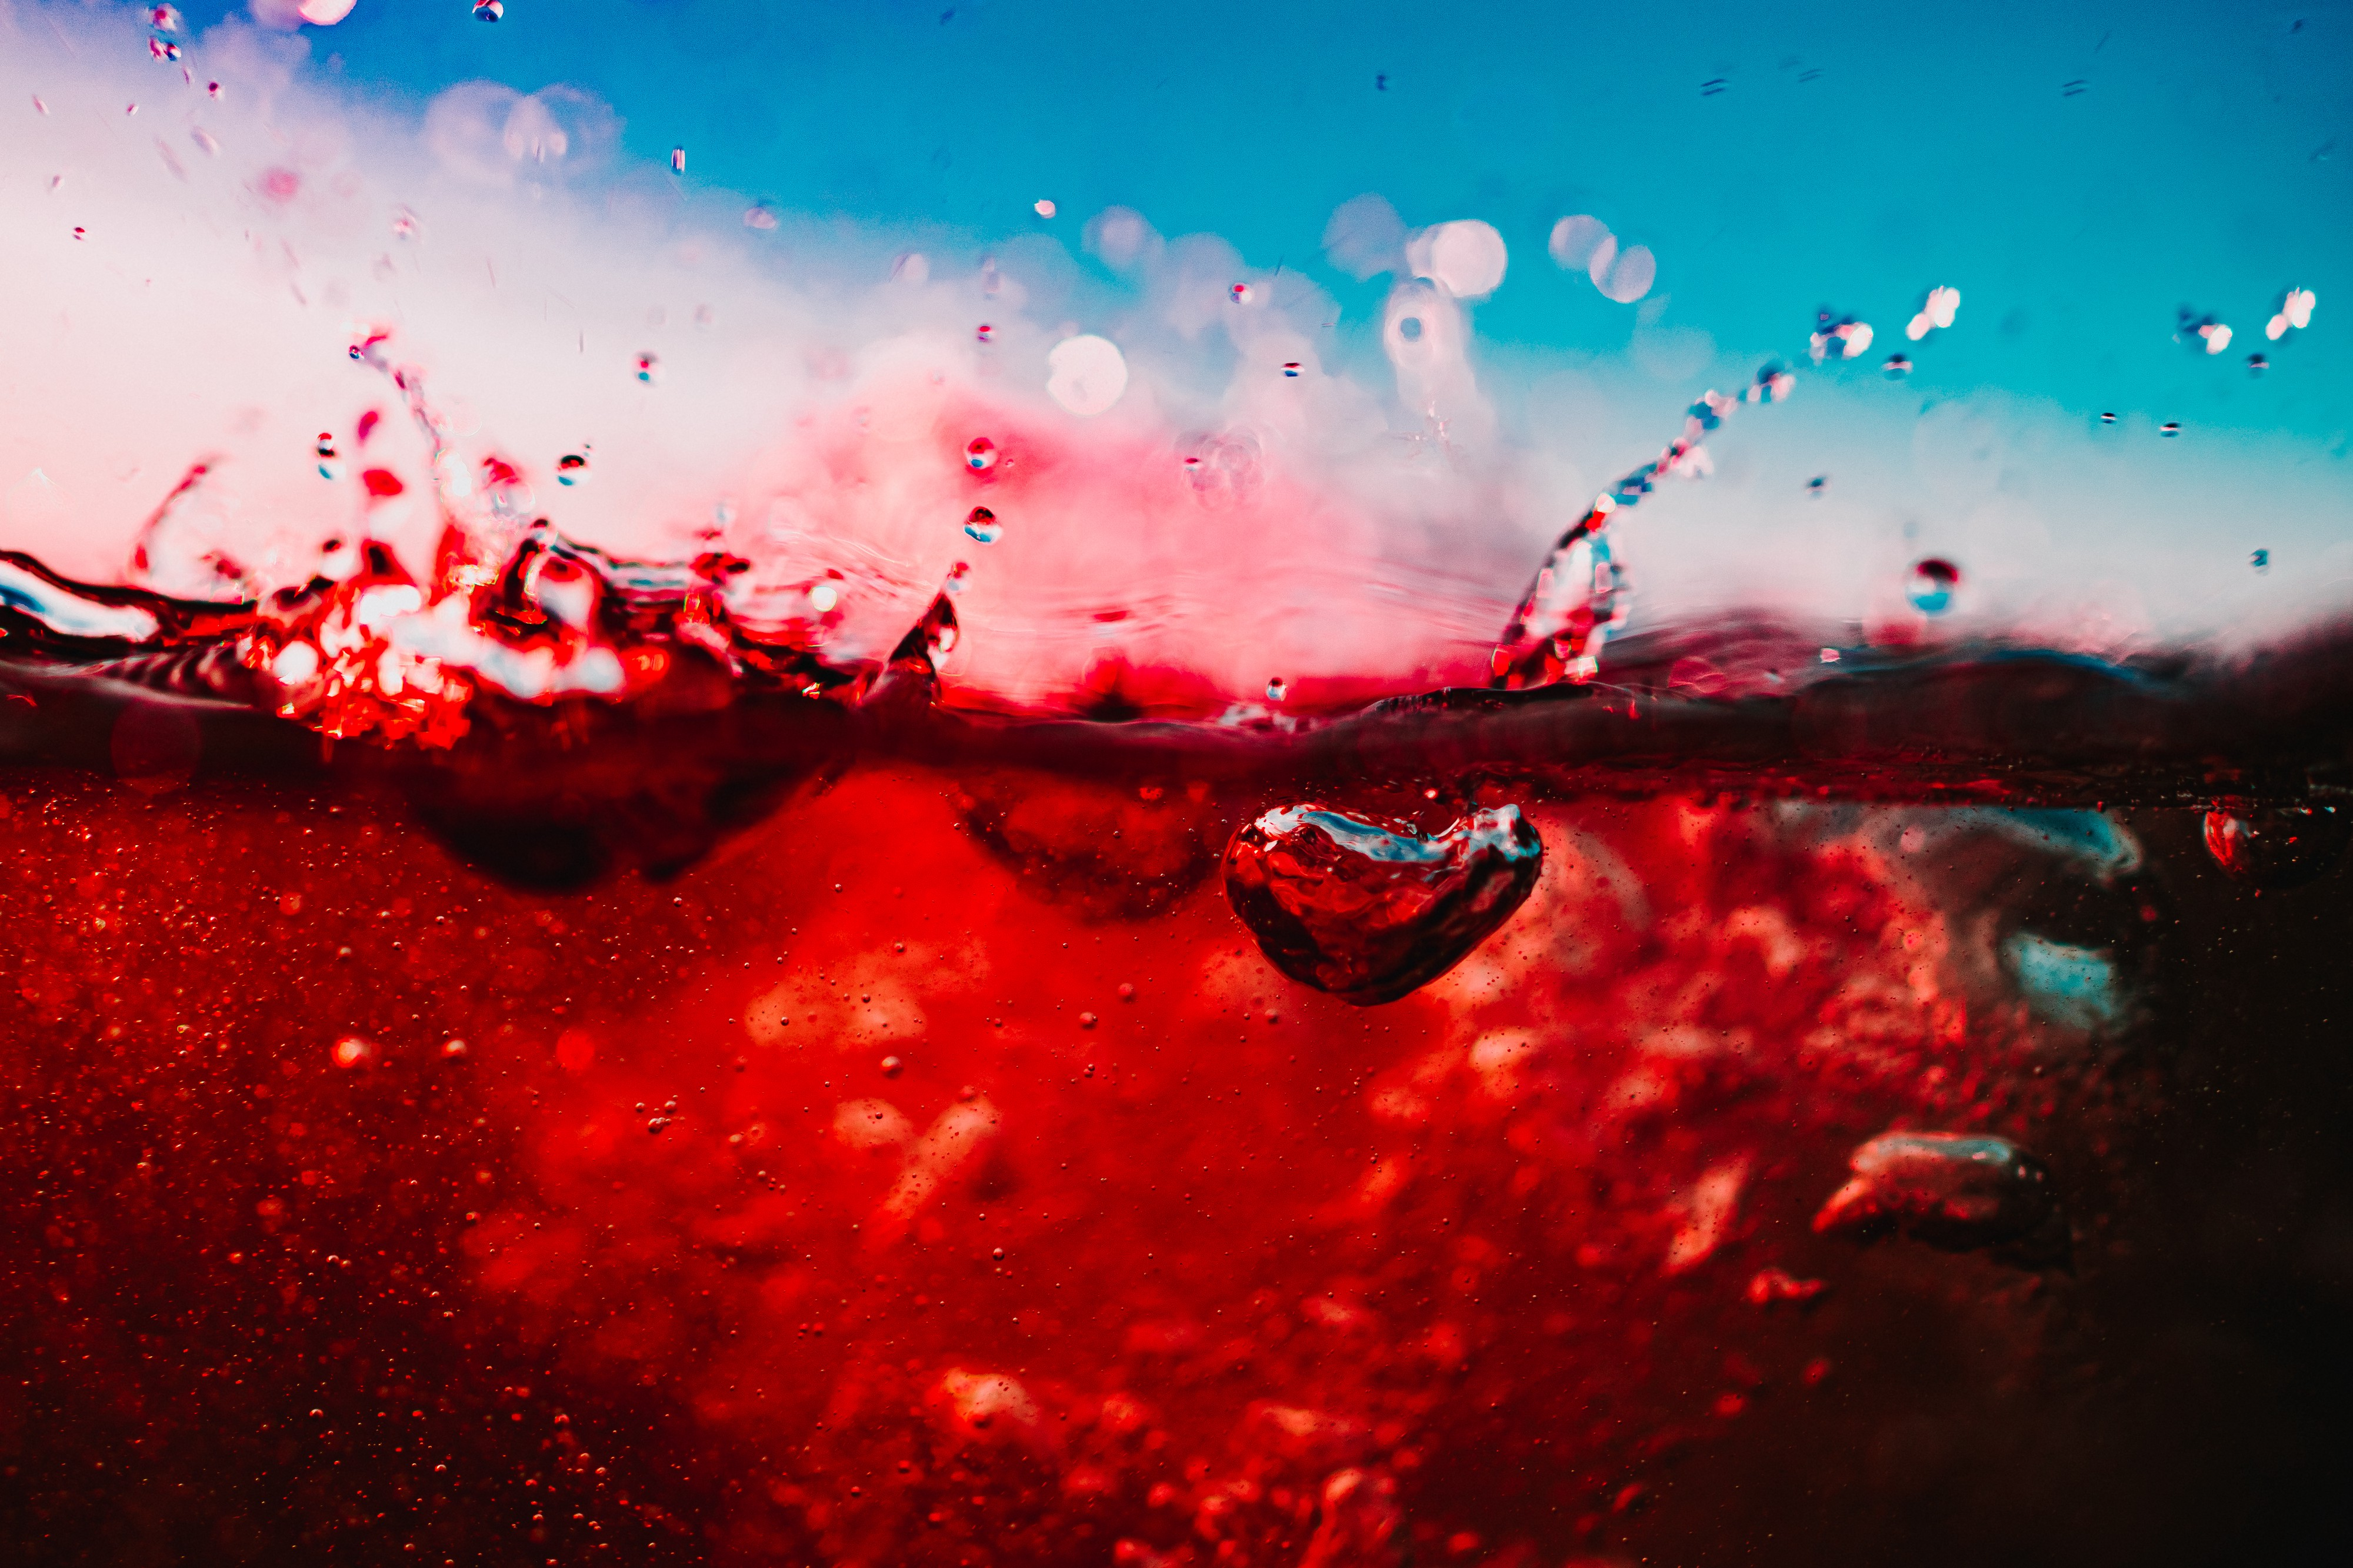 Close up image of bright red wine splashing against a blue background.